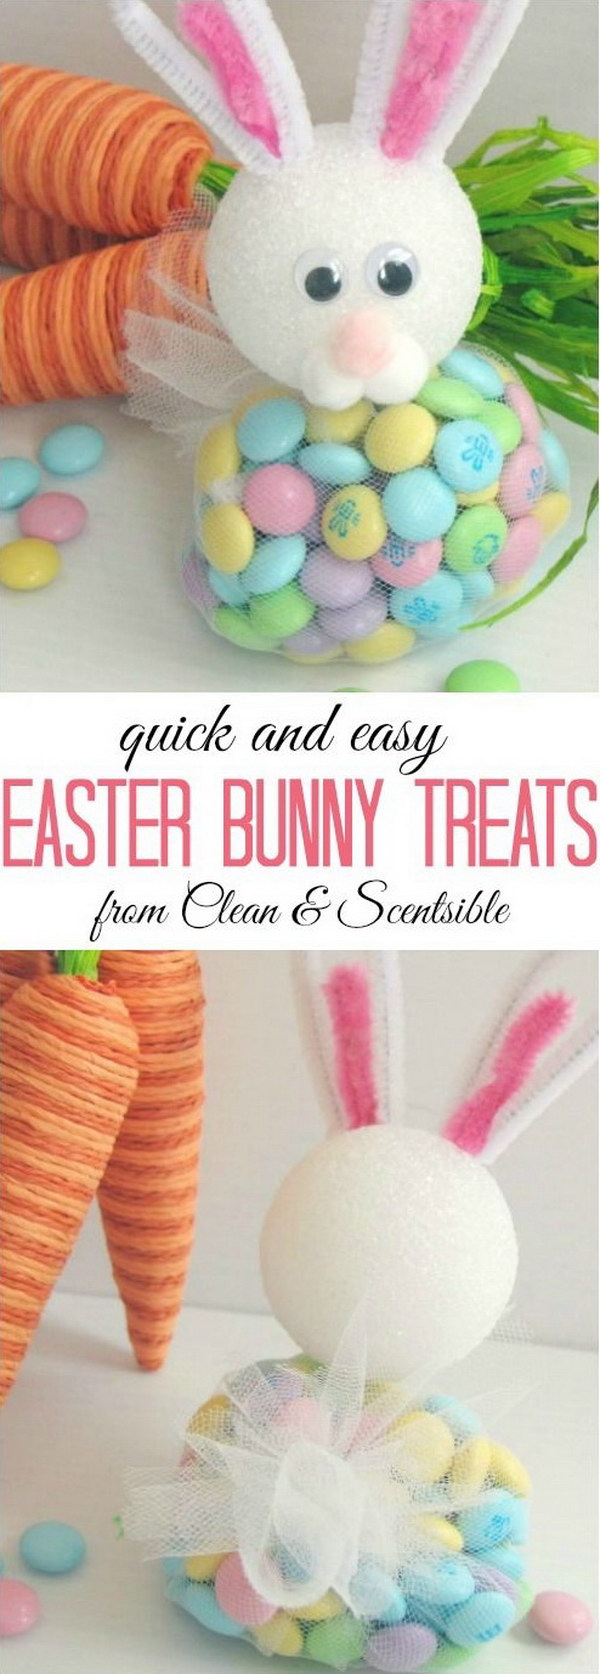 Easy But Cute Easter Bunny Treats